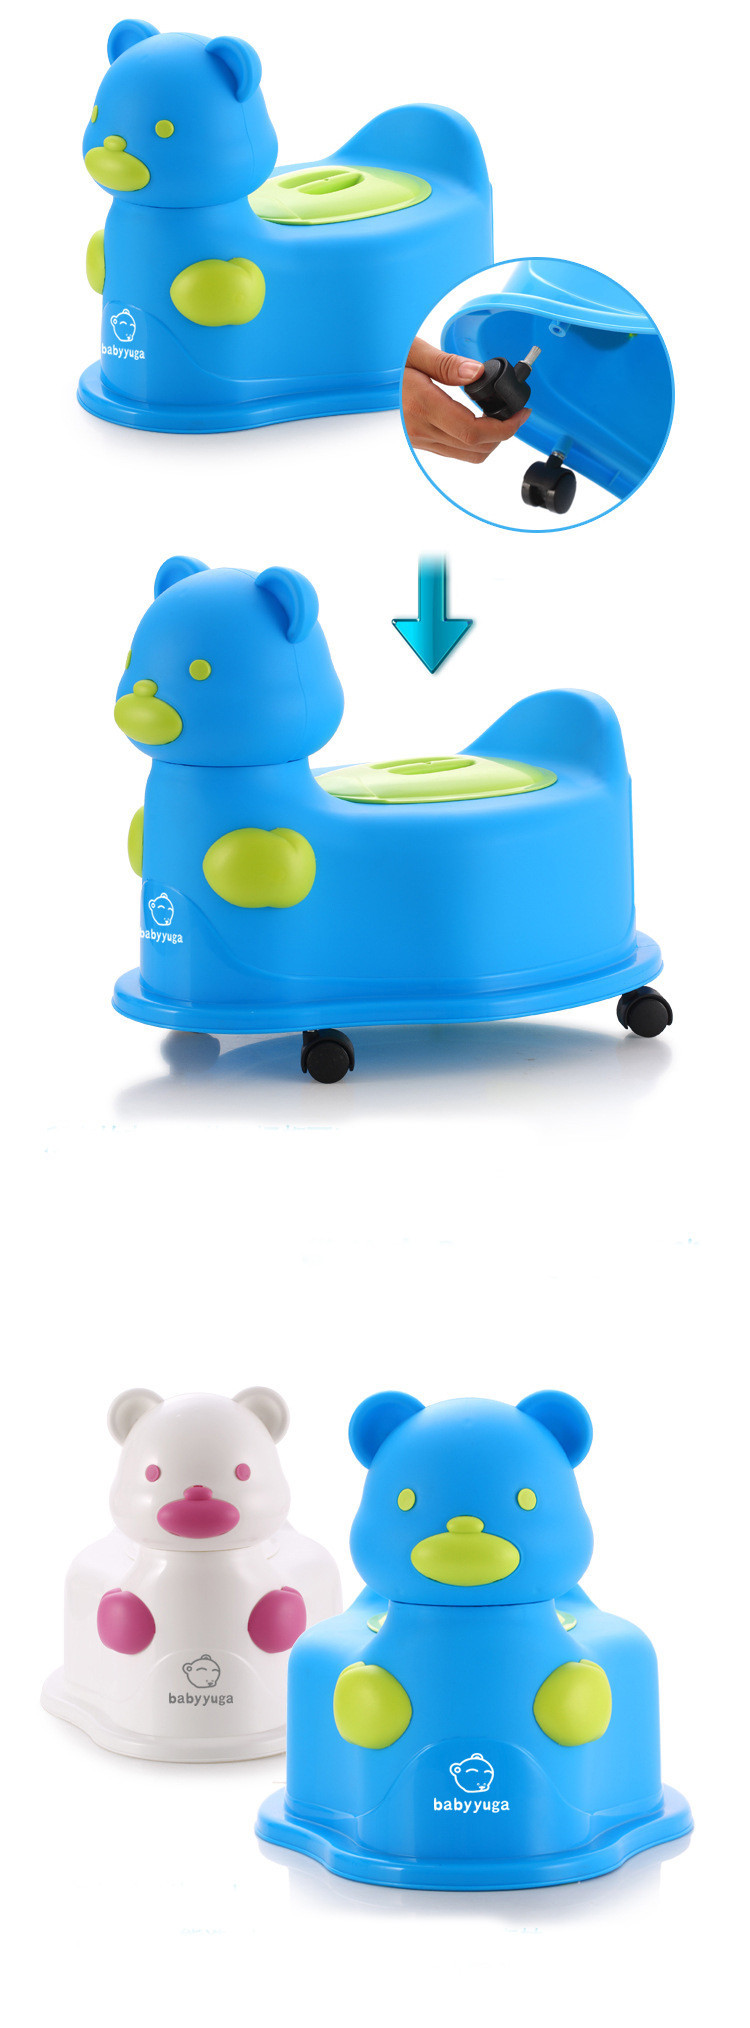 Hot Sale Colorful Cartoon Kawaii Bear Multifunctional baby potty kids toilet chair with wheel portable potty baby jordan toy car